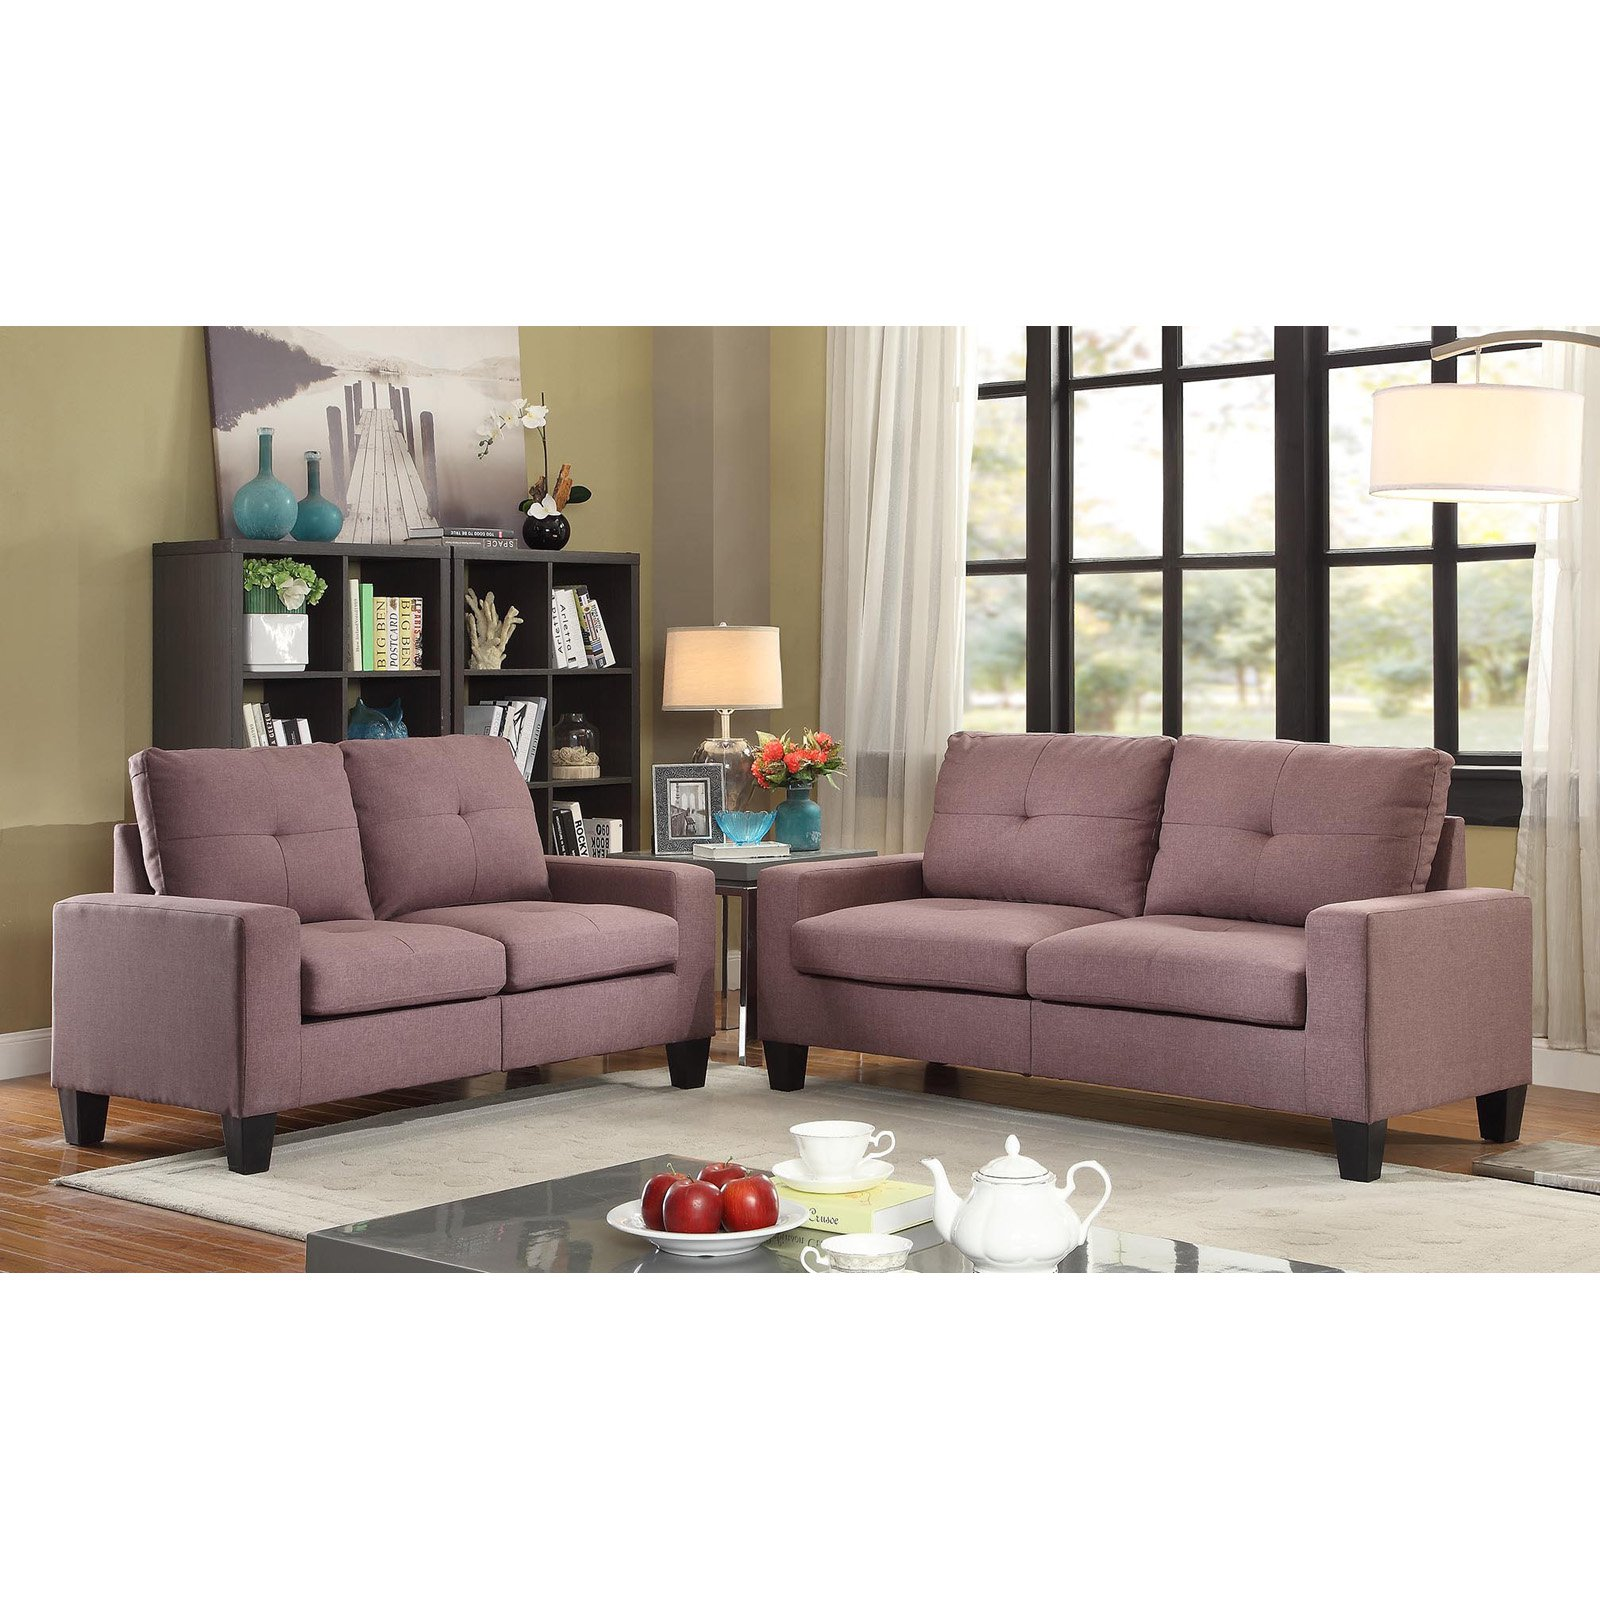 Acme Furniture Platinum II Linen Sofa